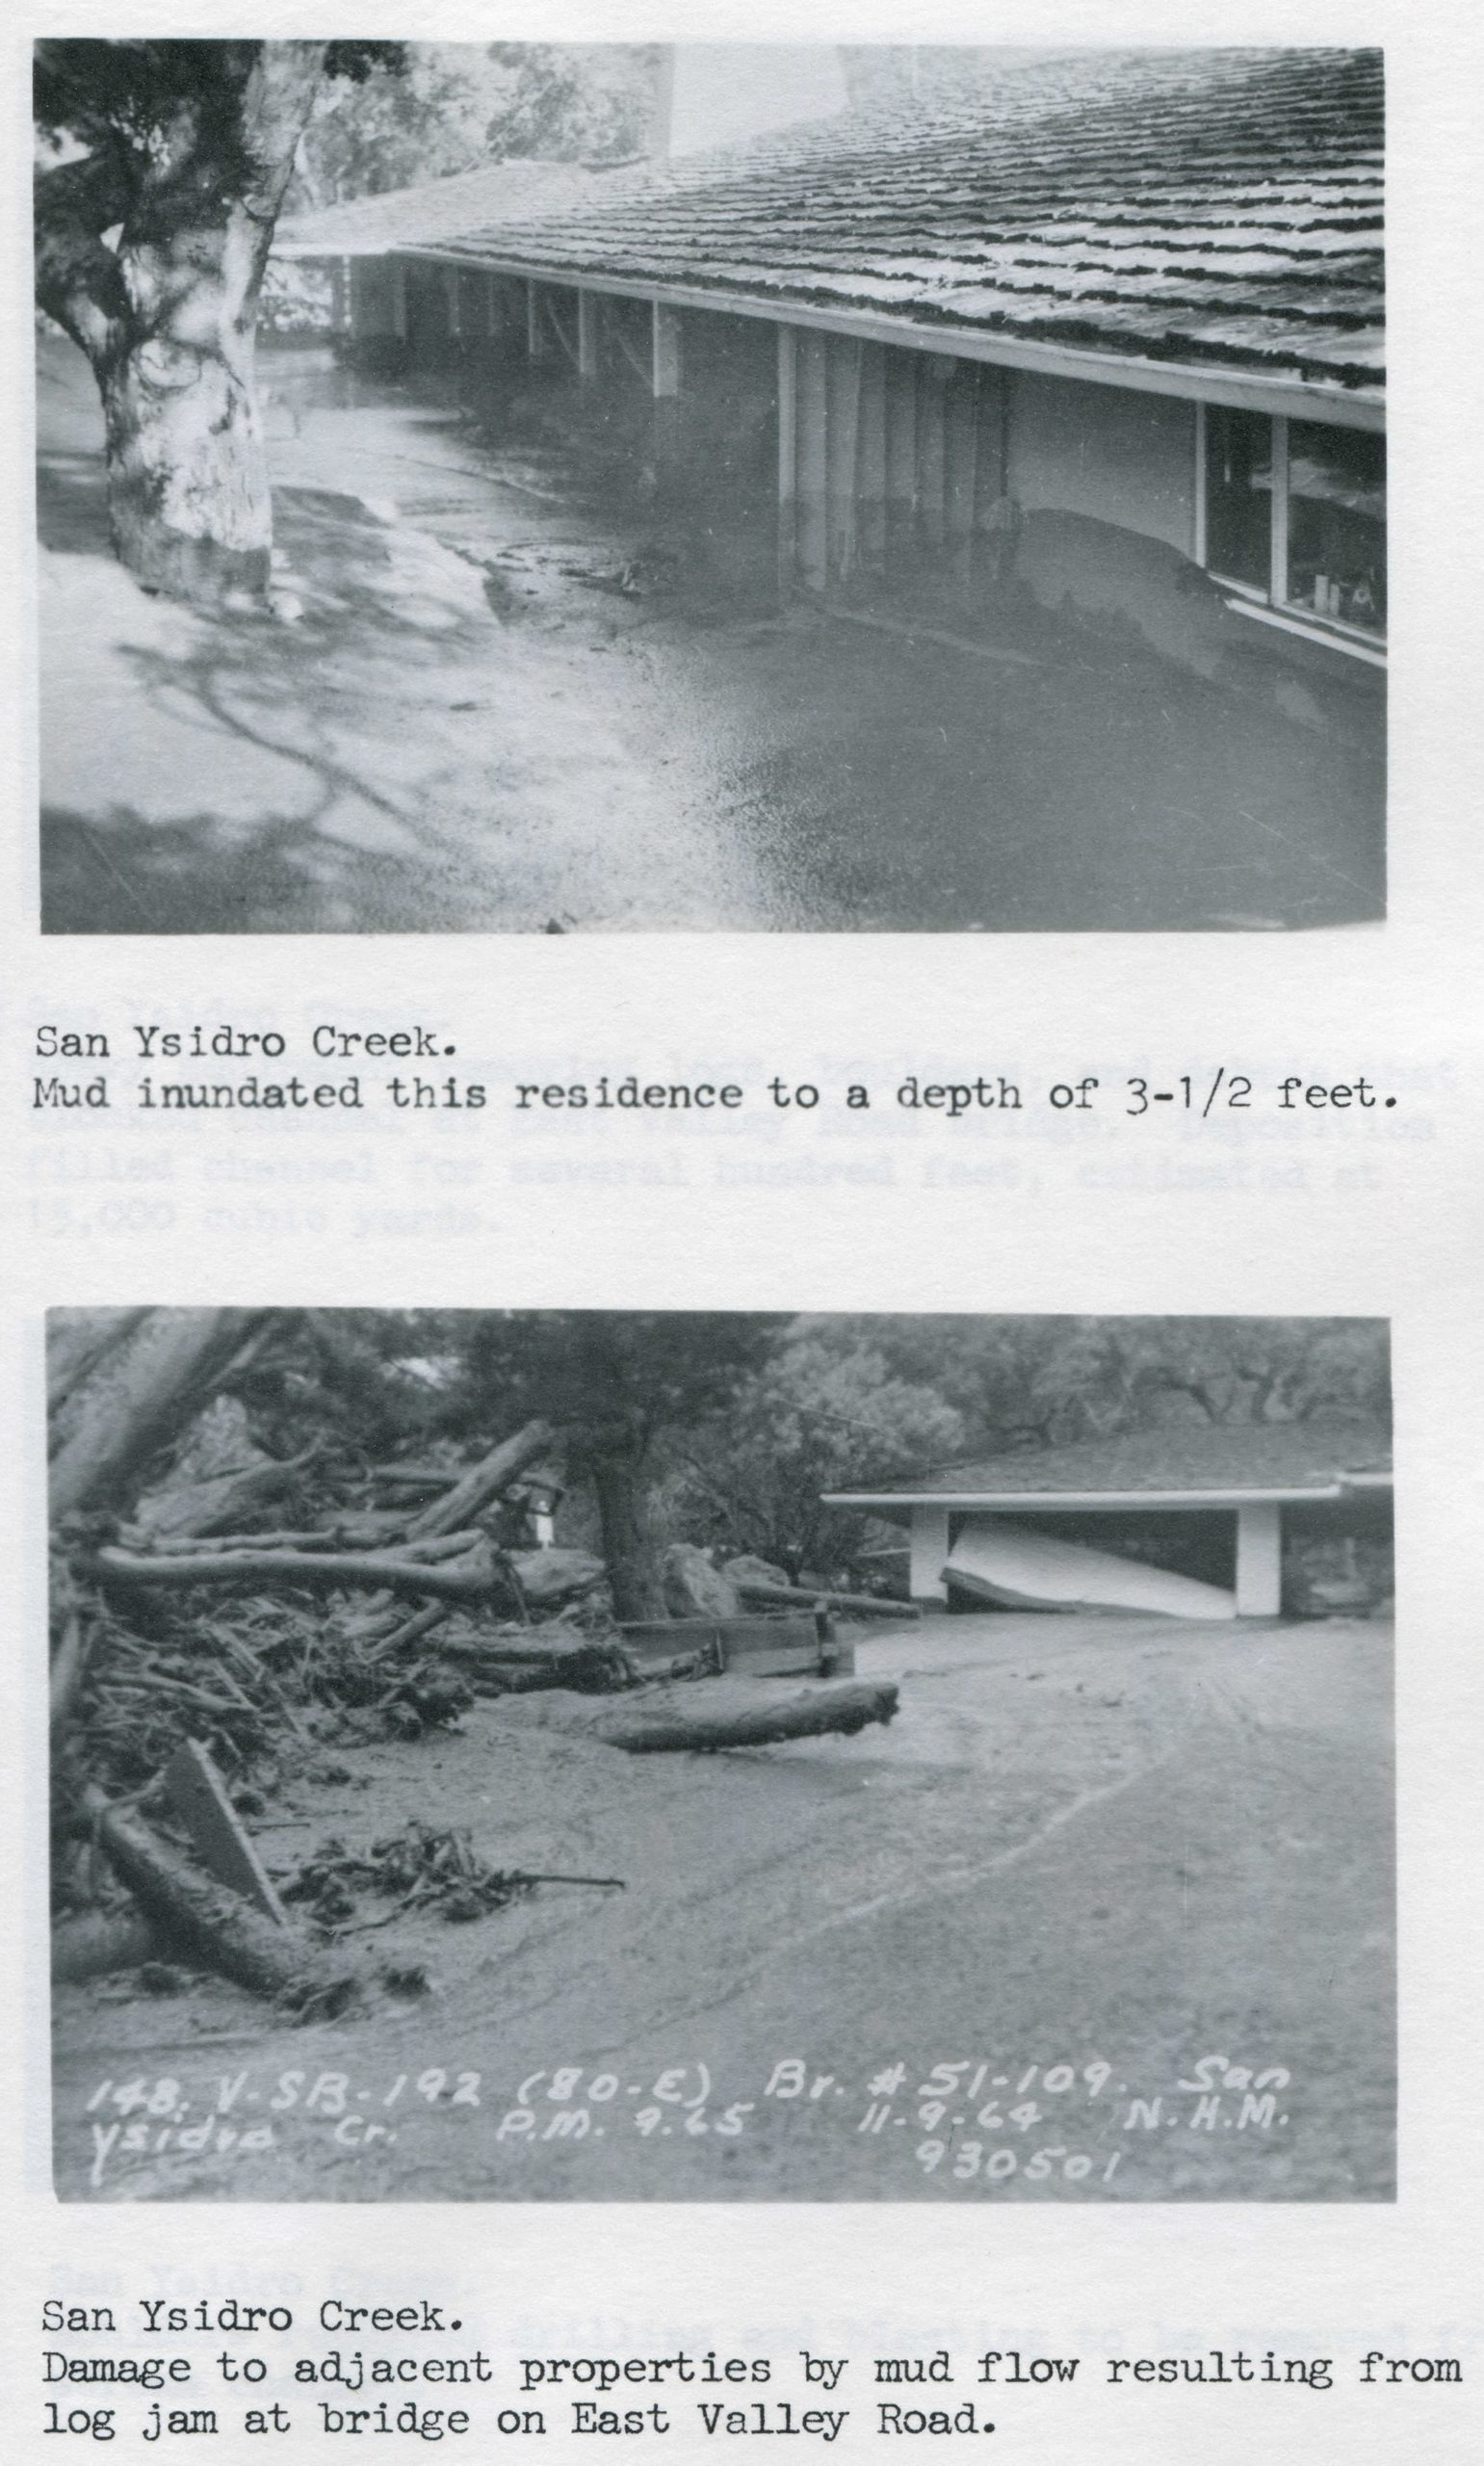 San Ysidro Creek damage, 1964